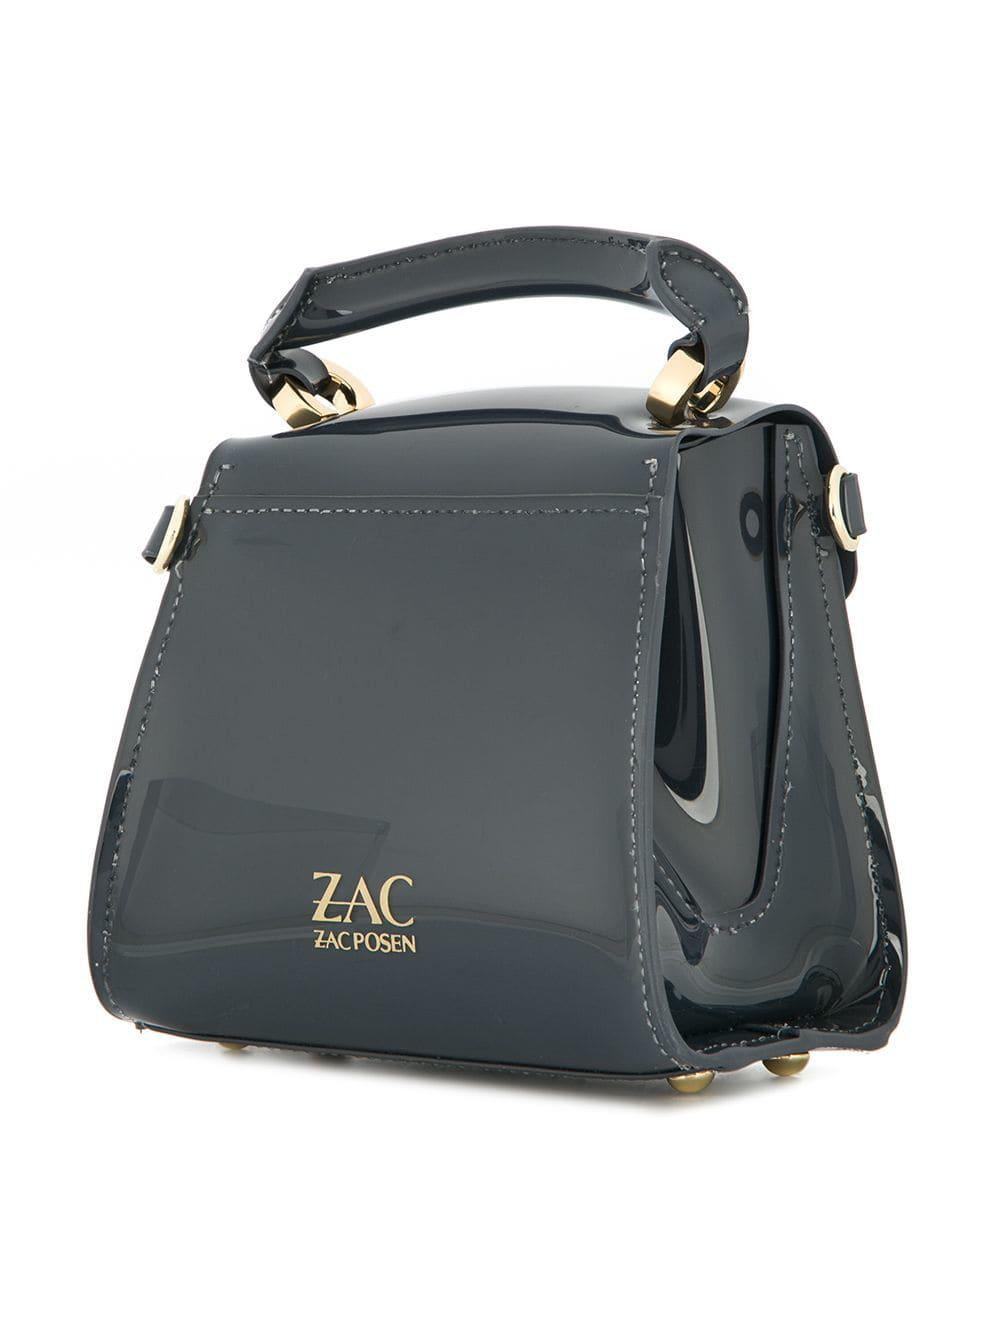 ce111b7c0f Zac Zac Posen Eartha Iconic Mini Bag in Gray - Lyst